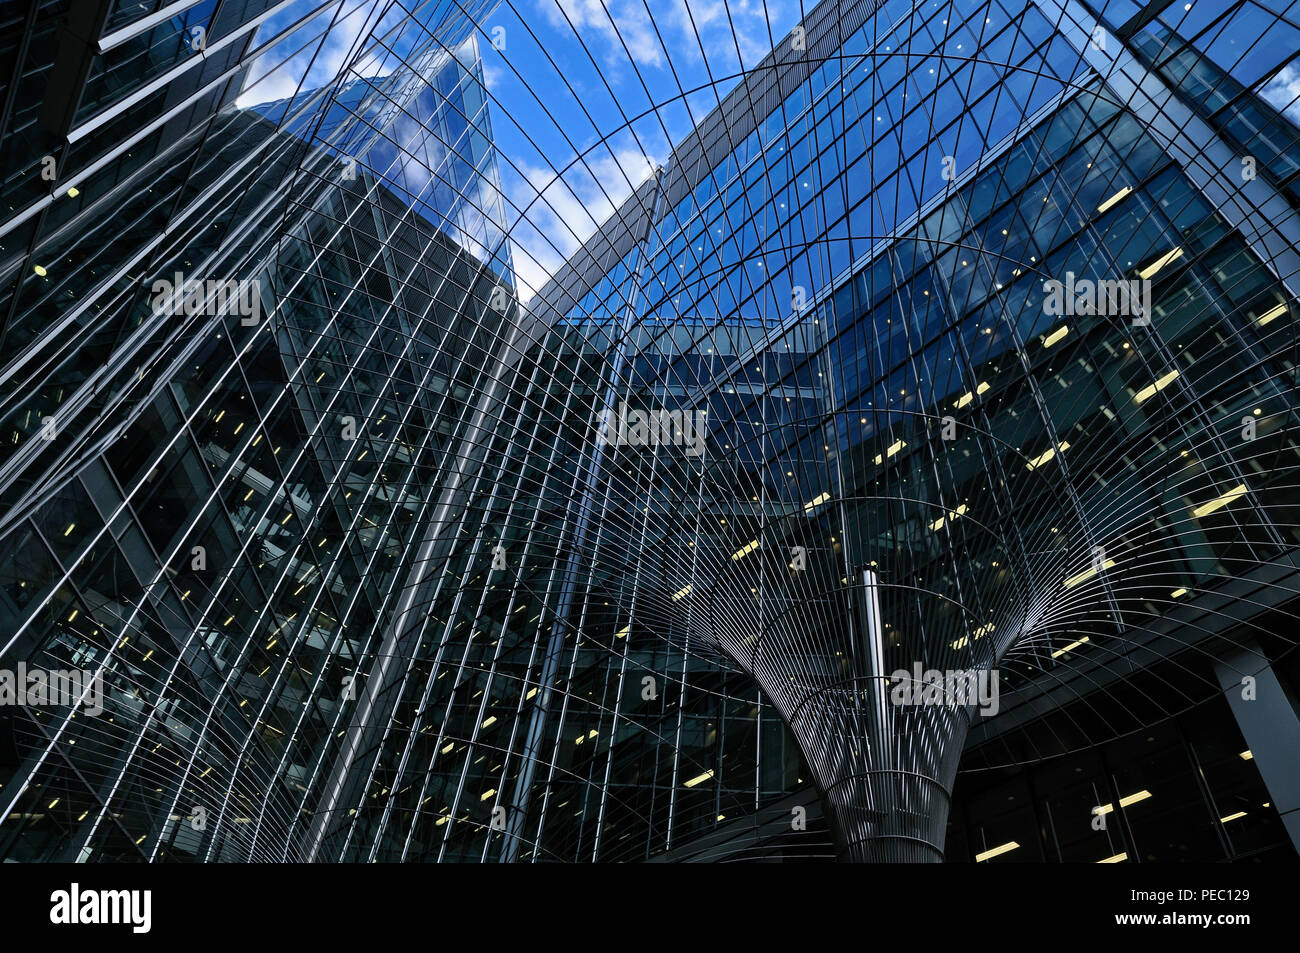 Contemporary architectural abstract of glass office buildings, London, England, UK - Stock Image